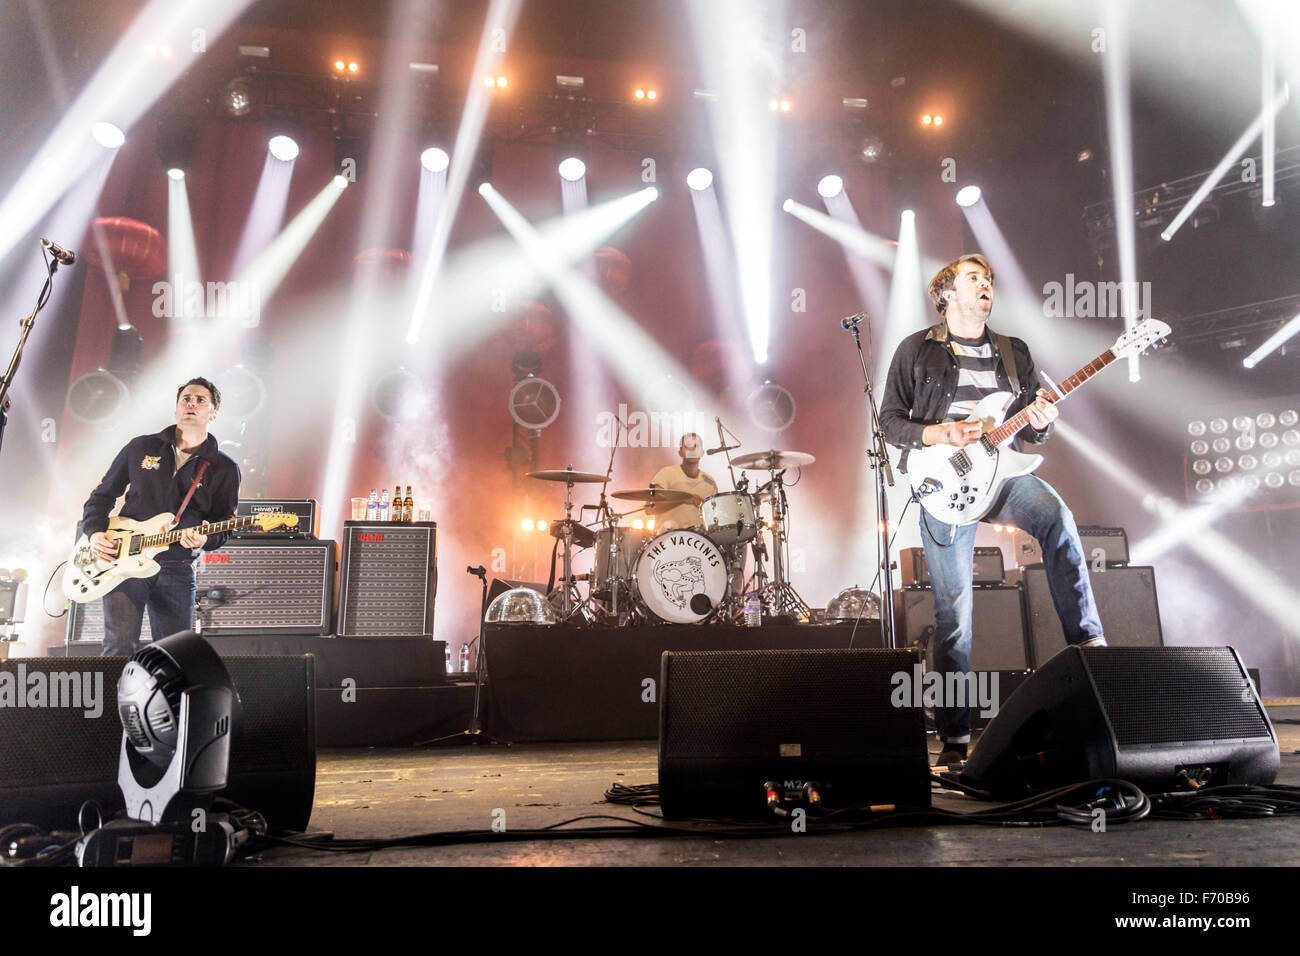 London, UK, 22 Nov 2015. The Vaccines Live Performance at o2 Brixton Academy. Credit:  Robert Stainforth/Alamy Live Stock Photo